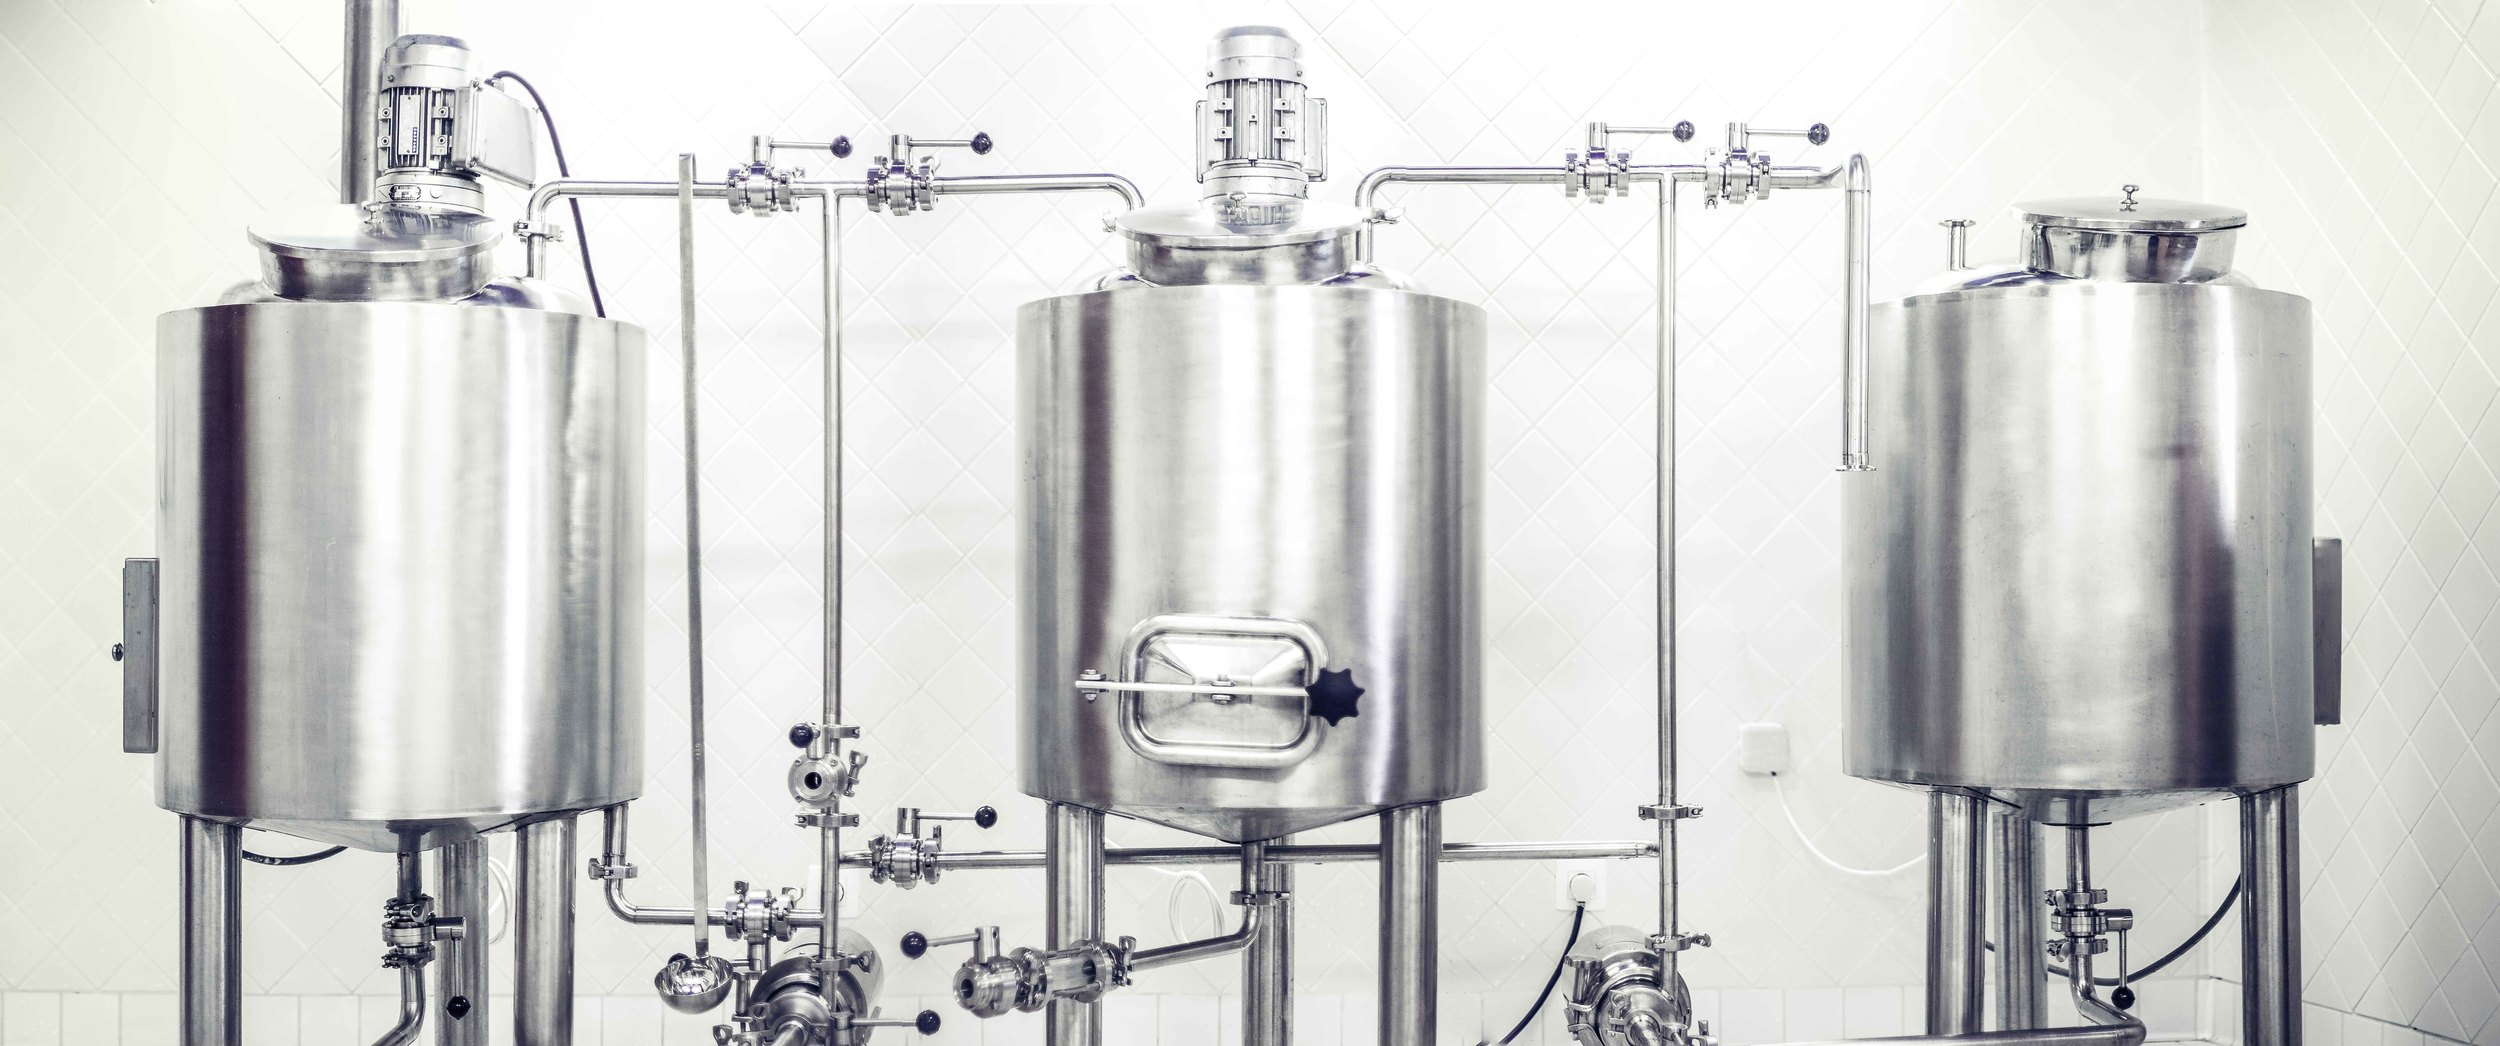 Our micro-brewery allowed us to brew around 75 liters per batch. It   has been set up in order for you to see easily all of the different steps of the brewing process.